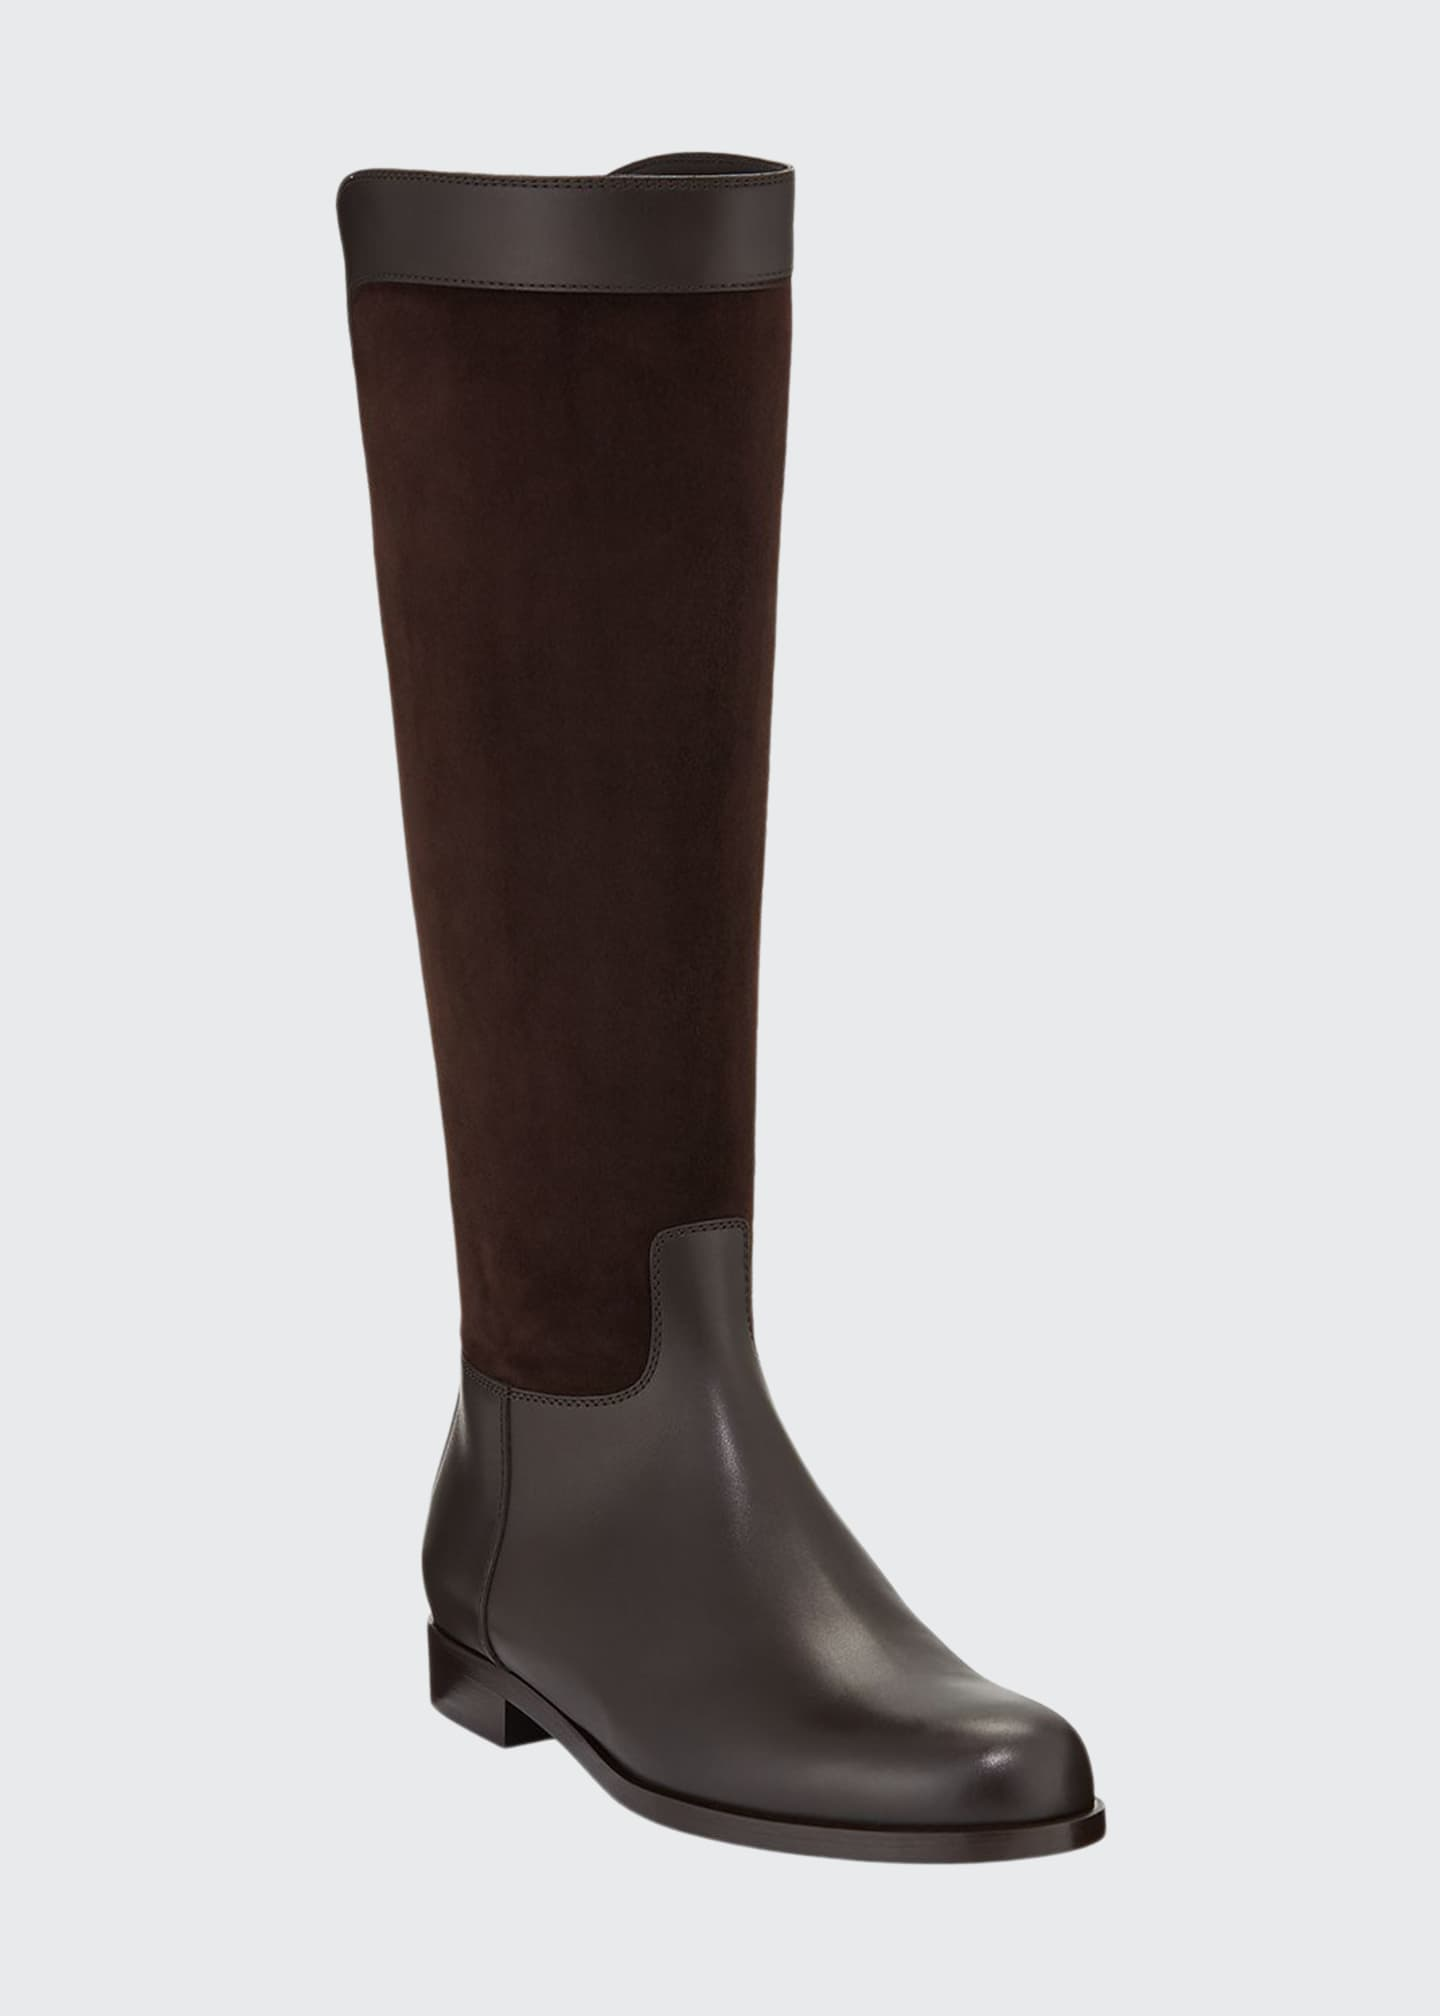 Loro Piana Welly Calf Flat Riding Boots